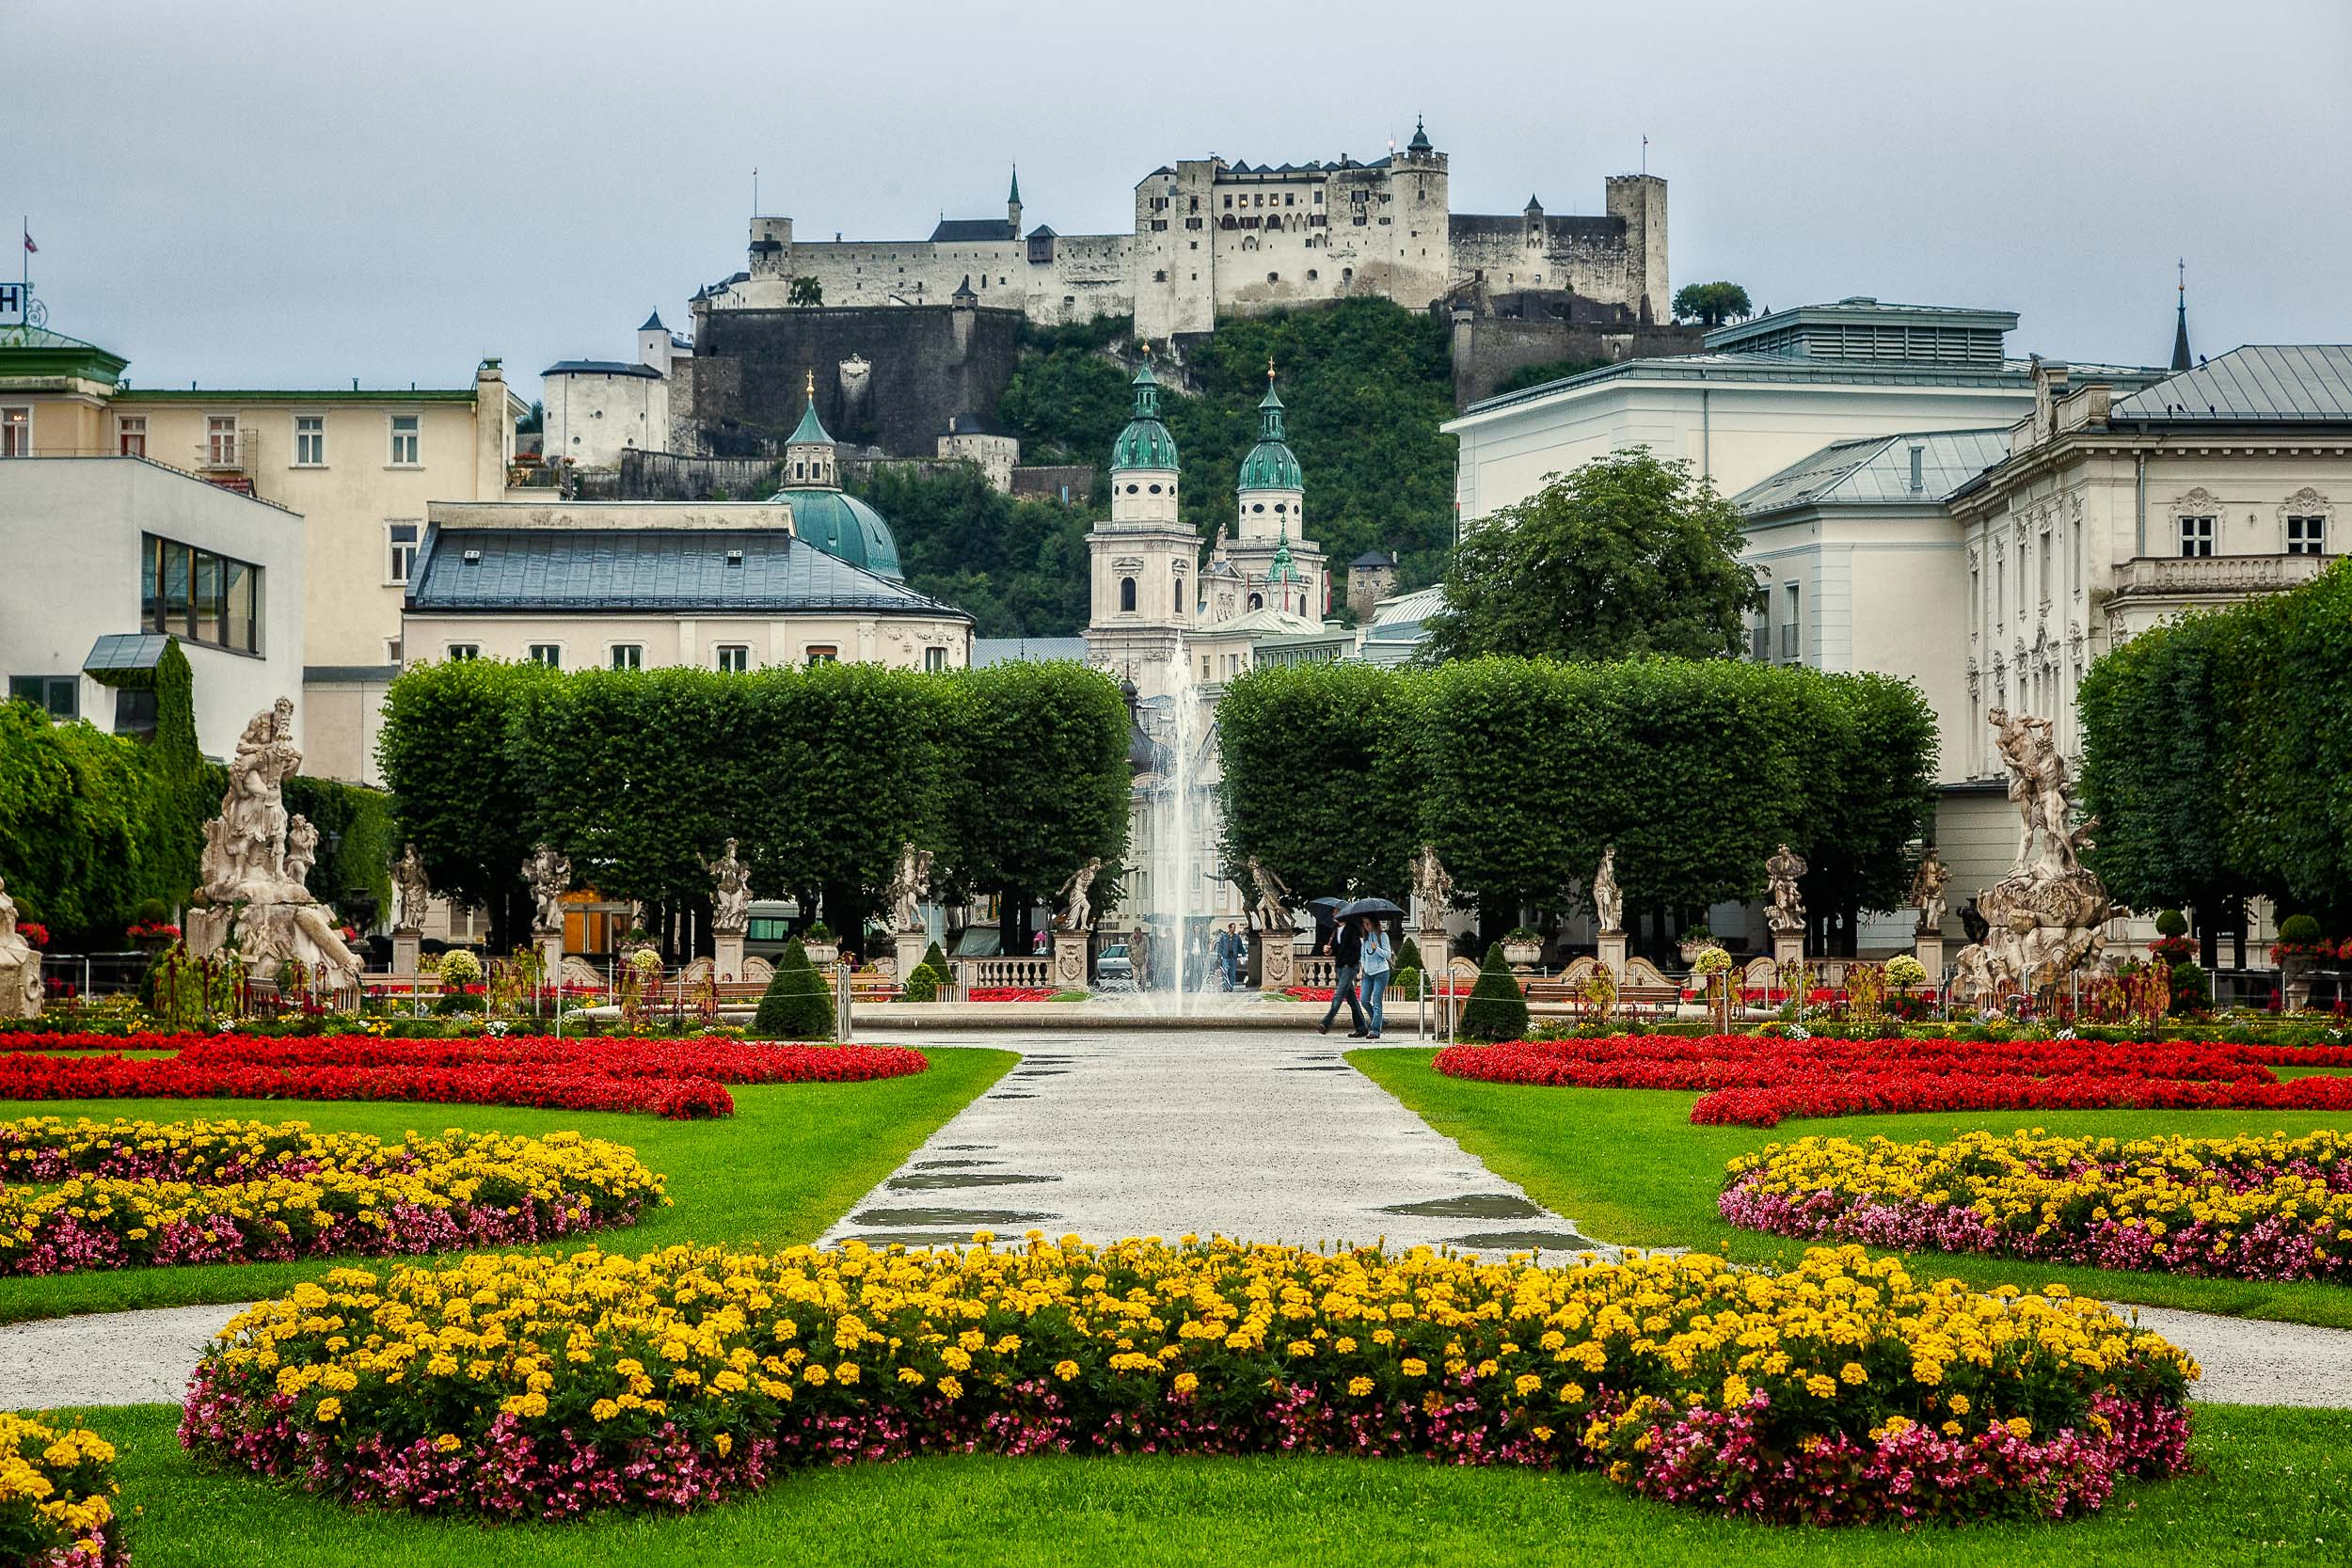 A classic view of  Hohensalzburg Fortress  from the beautiful  Mirabell Gardens  in  Salzburg, Austria .